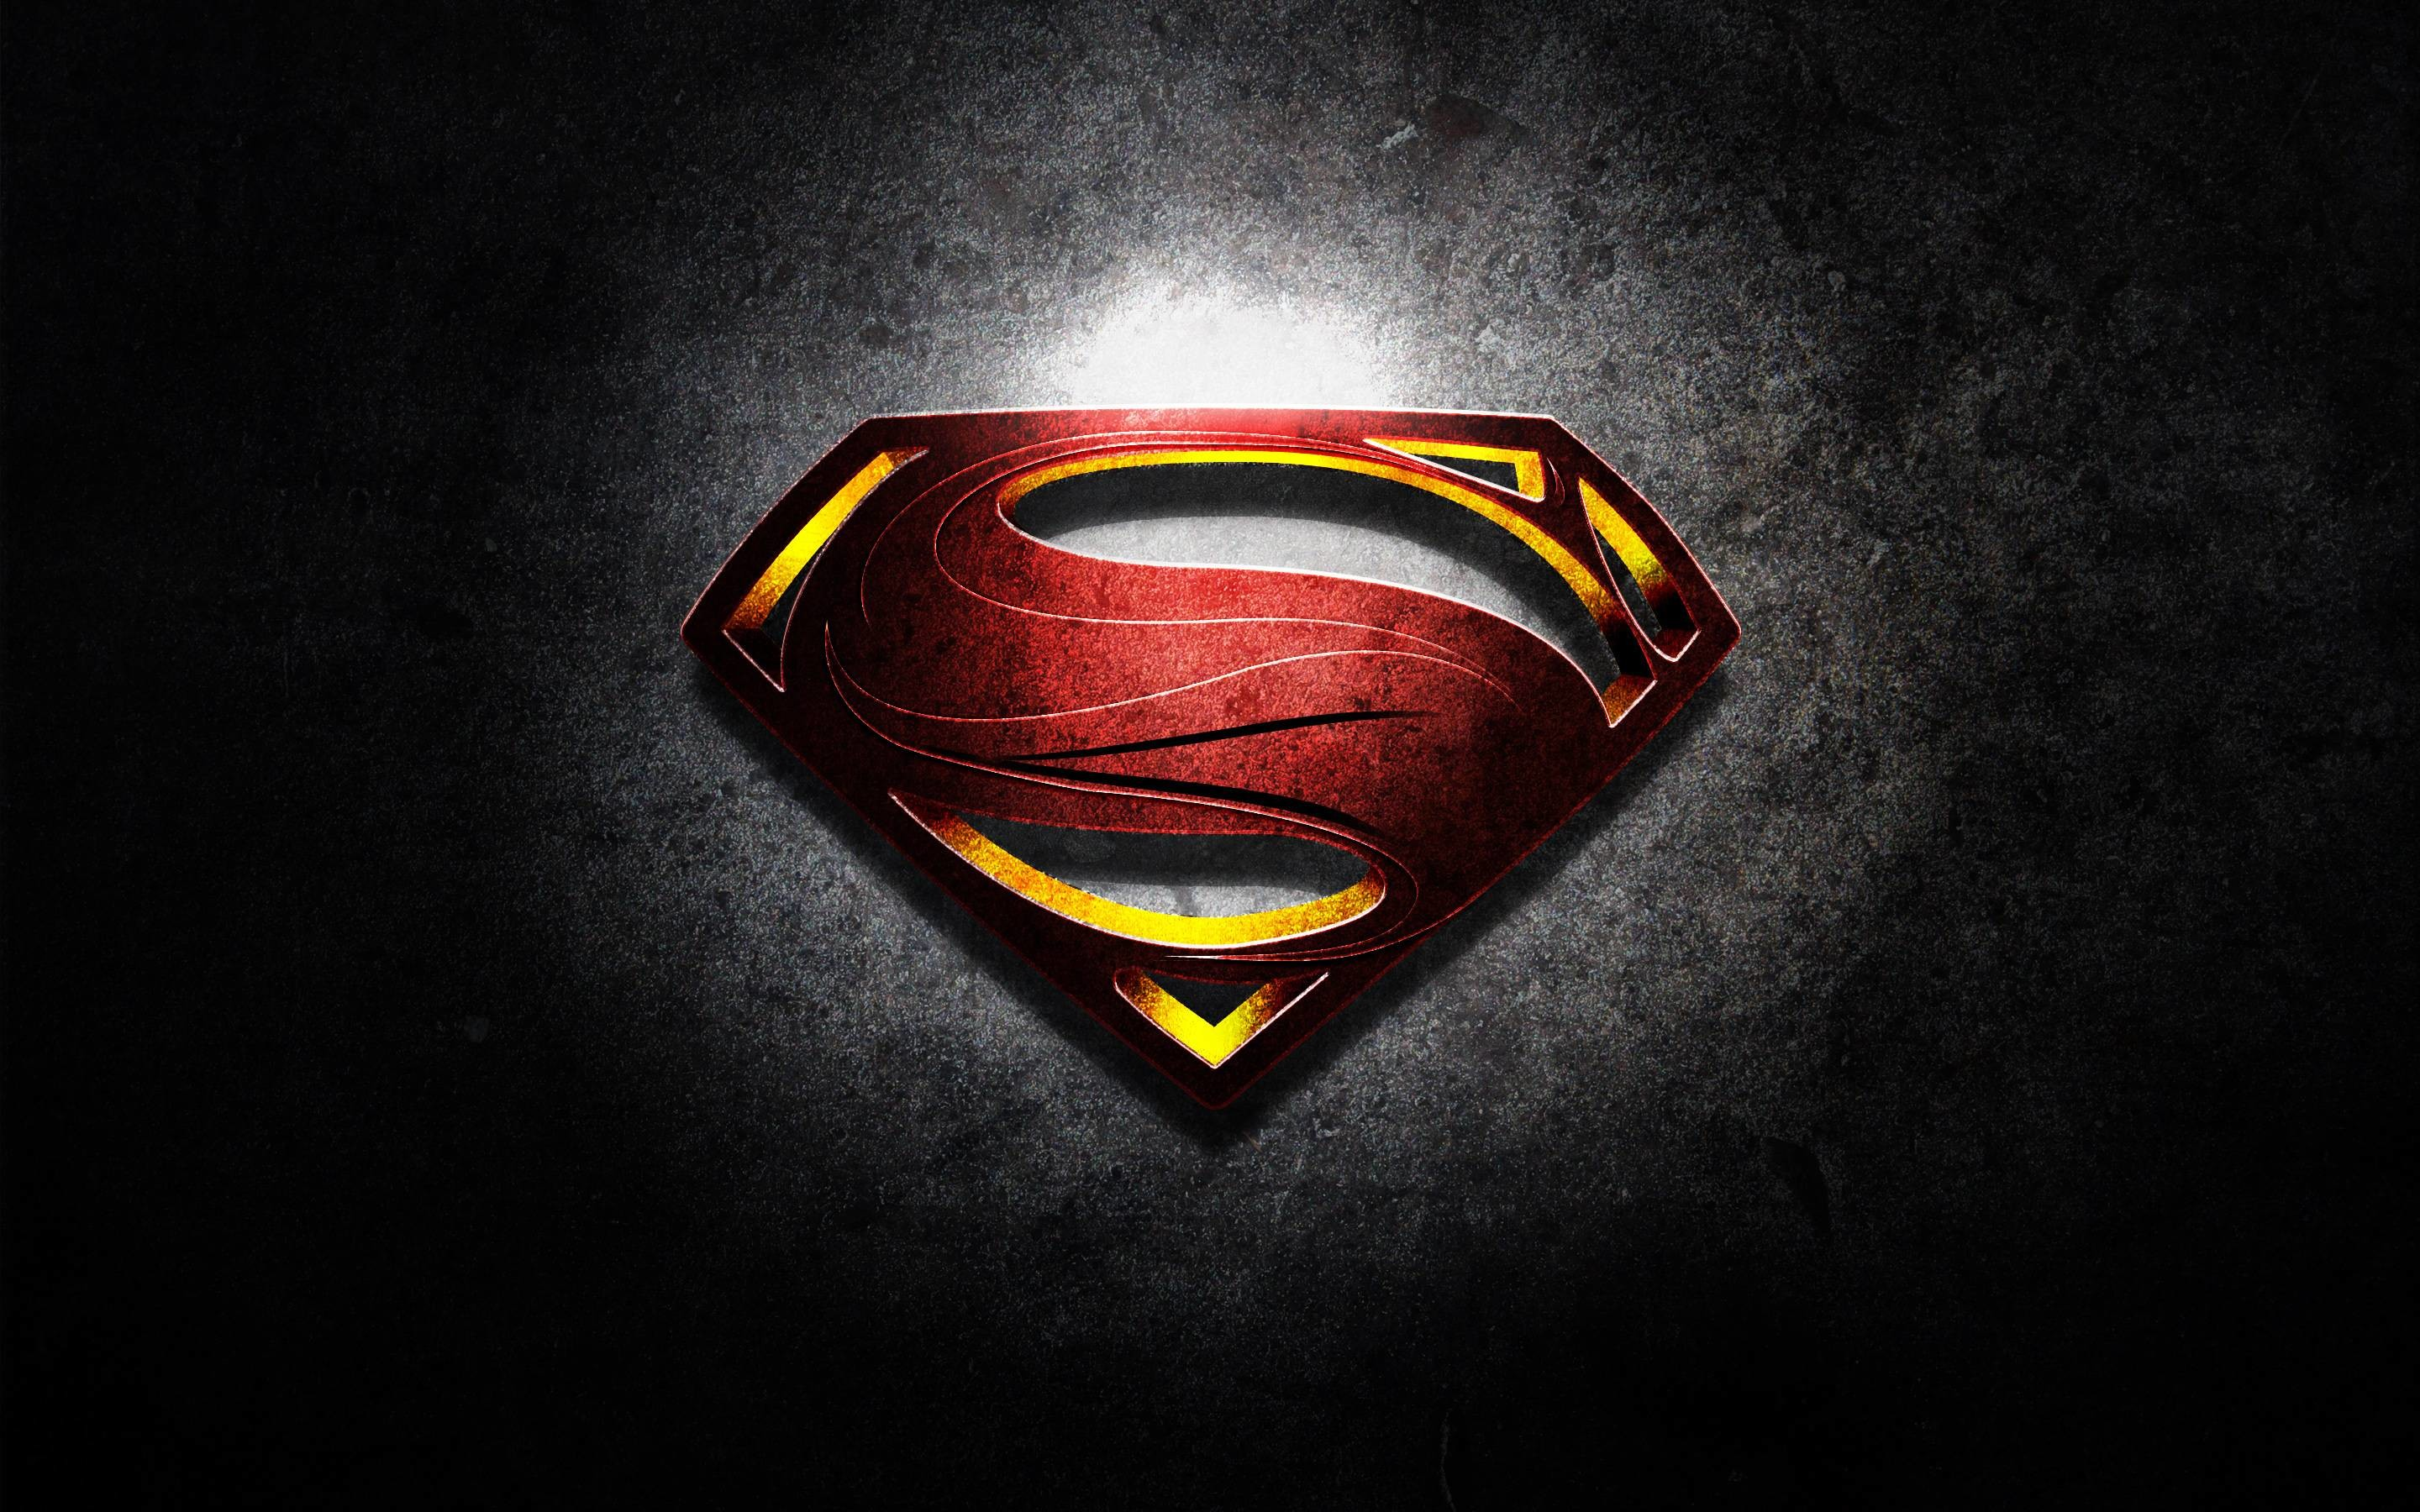 superman logo hd wallpaper (64+ images)